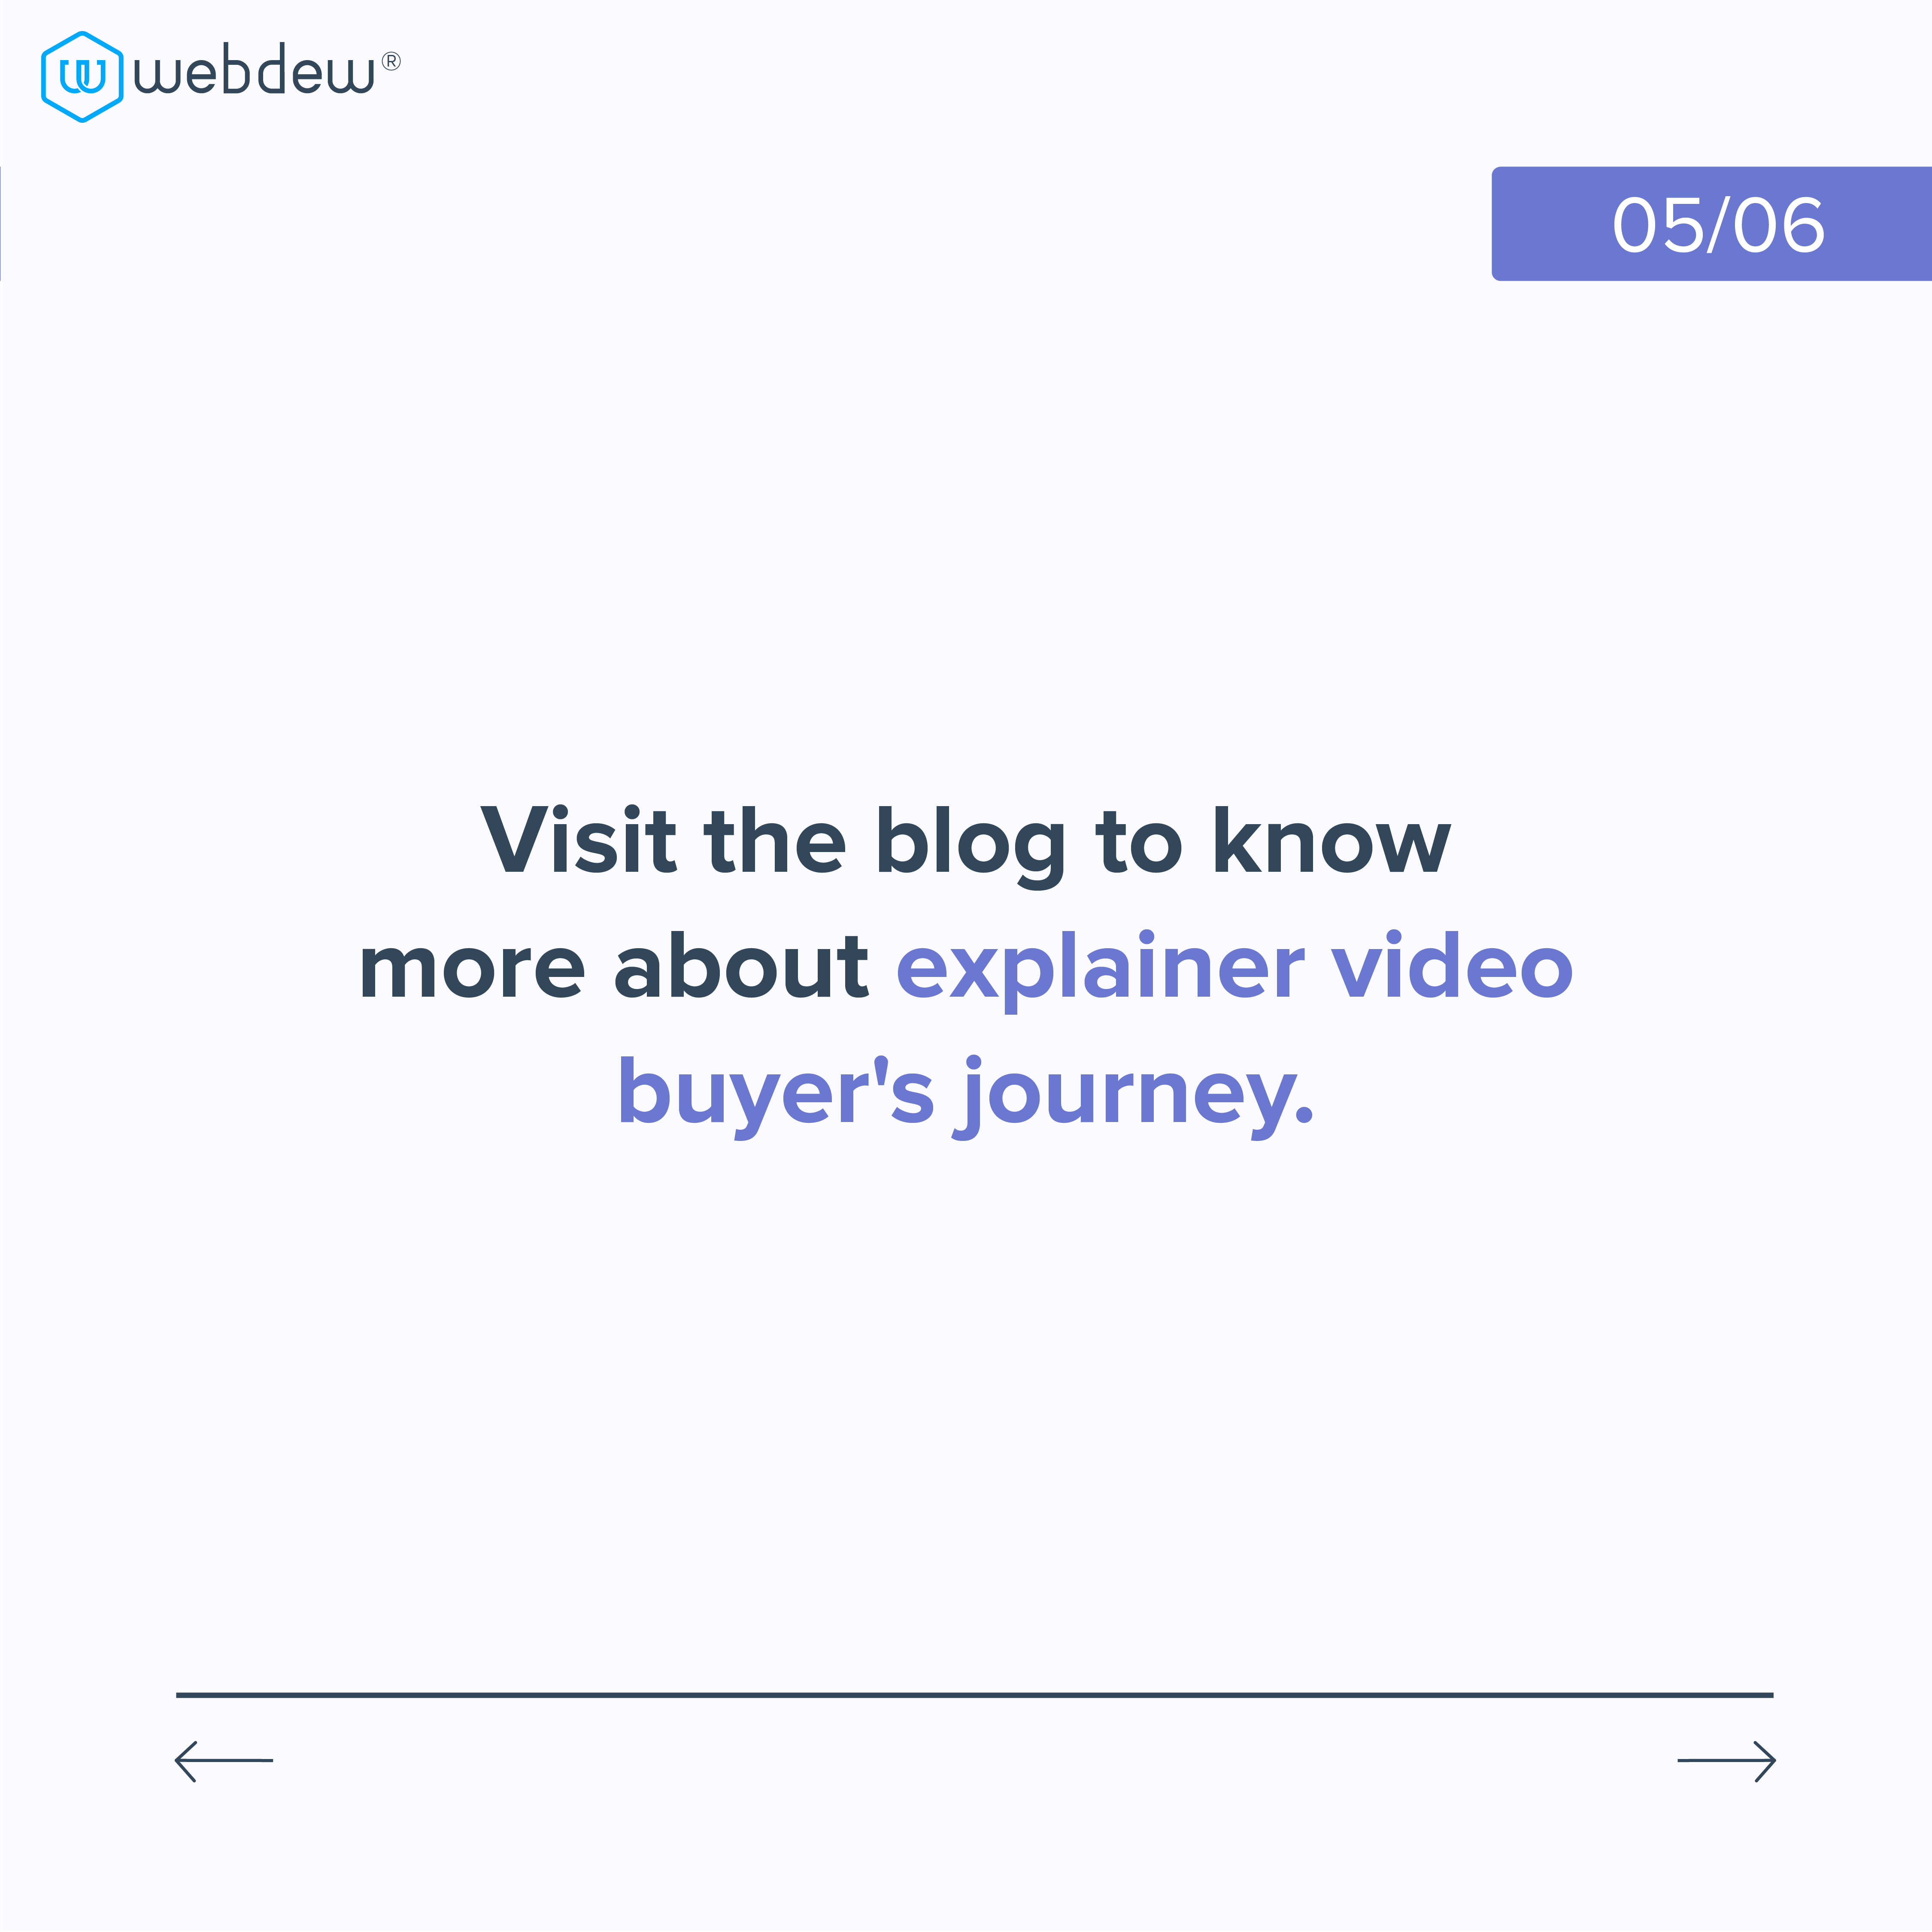 visit-blog-to-know-more-about-explainer-video